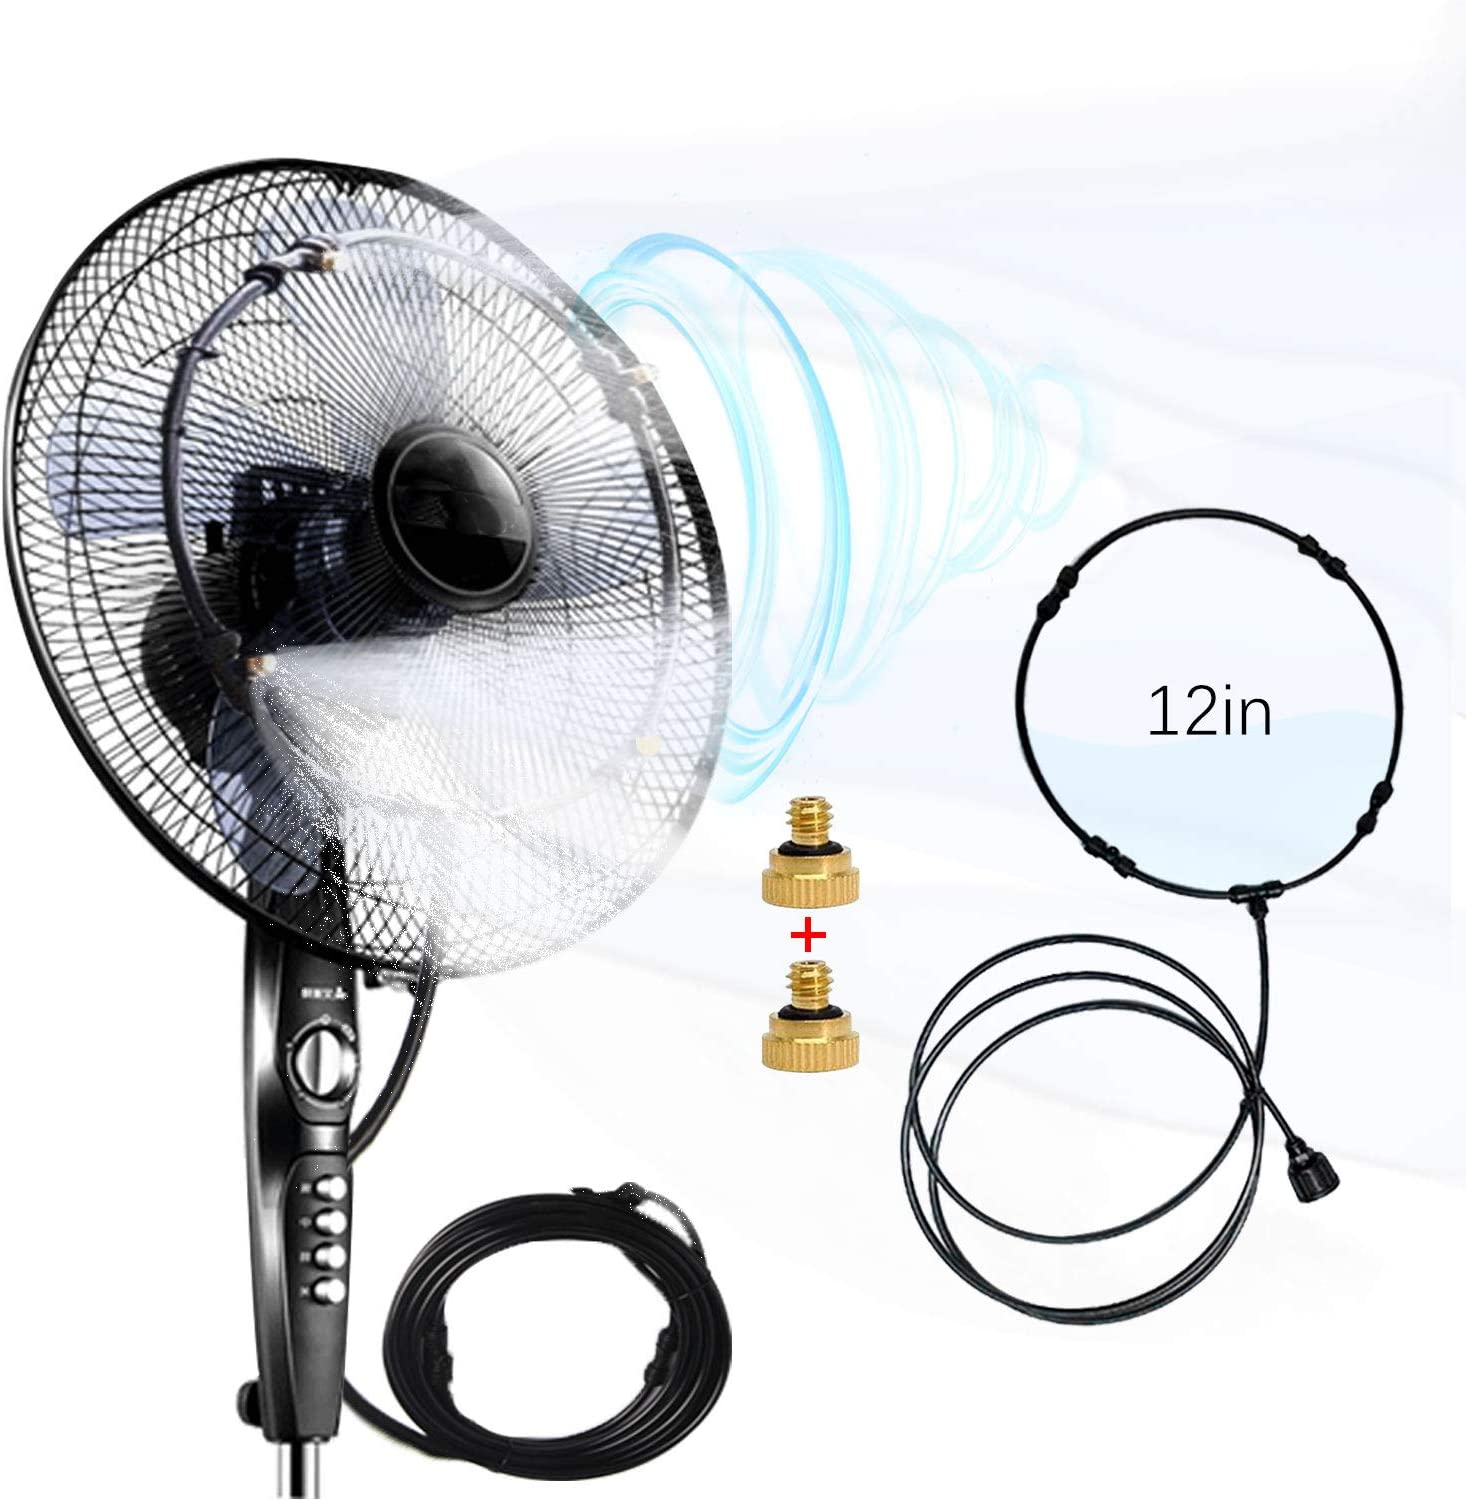 titkatool Outdoor Fan Misting Kit, 19.36FT Mist Cooling System, Cool Patios Misting Line and General Brass Adapter Connects to Any Fan Convert Misting for Cooling Outdoor